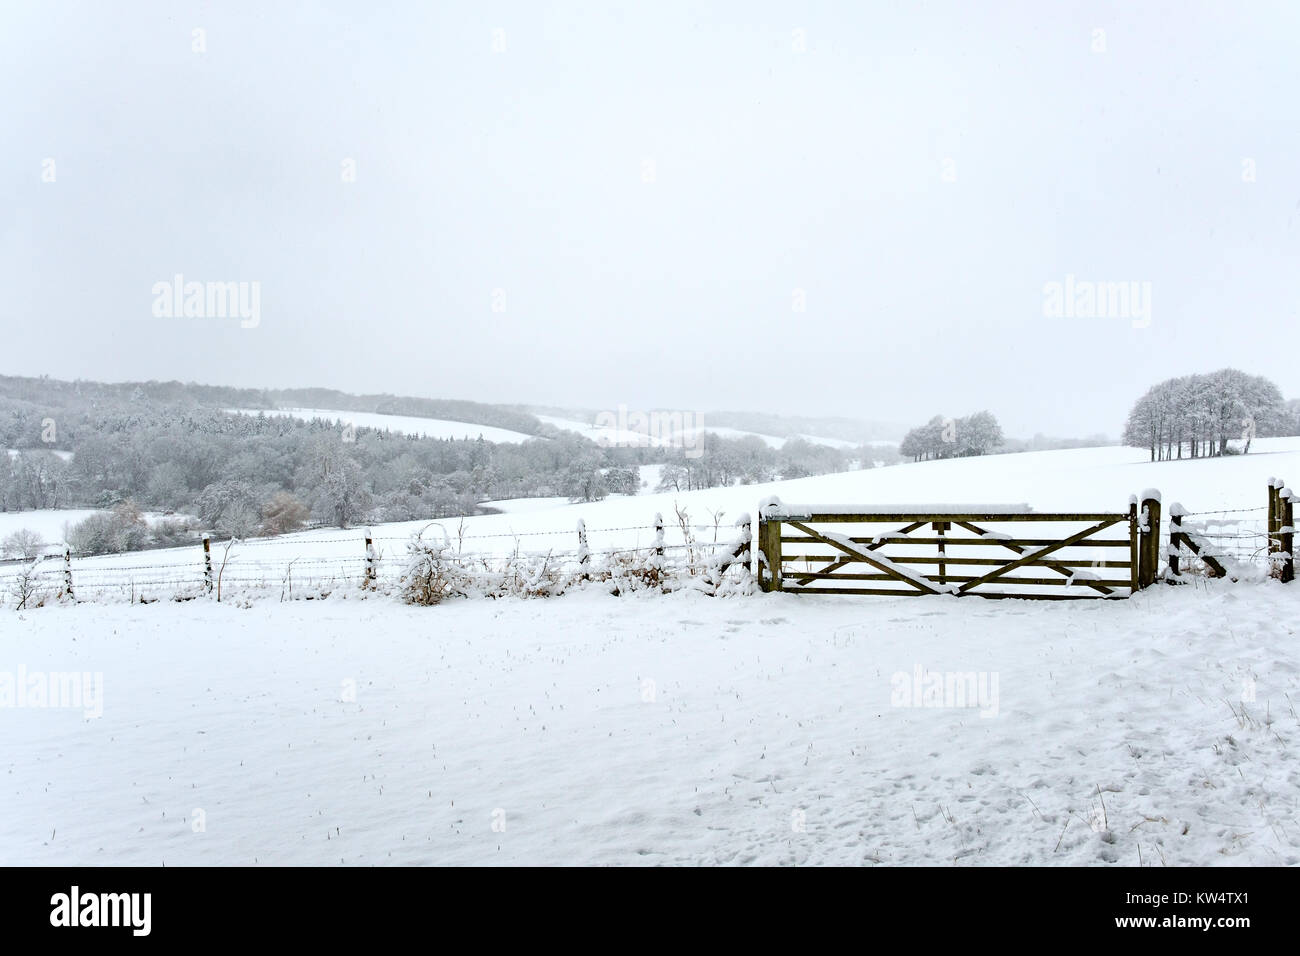 Snowy rural scene of the Chess Valley in The Chilterns - Stock Image